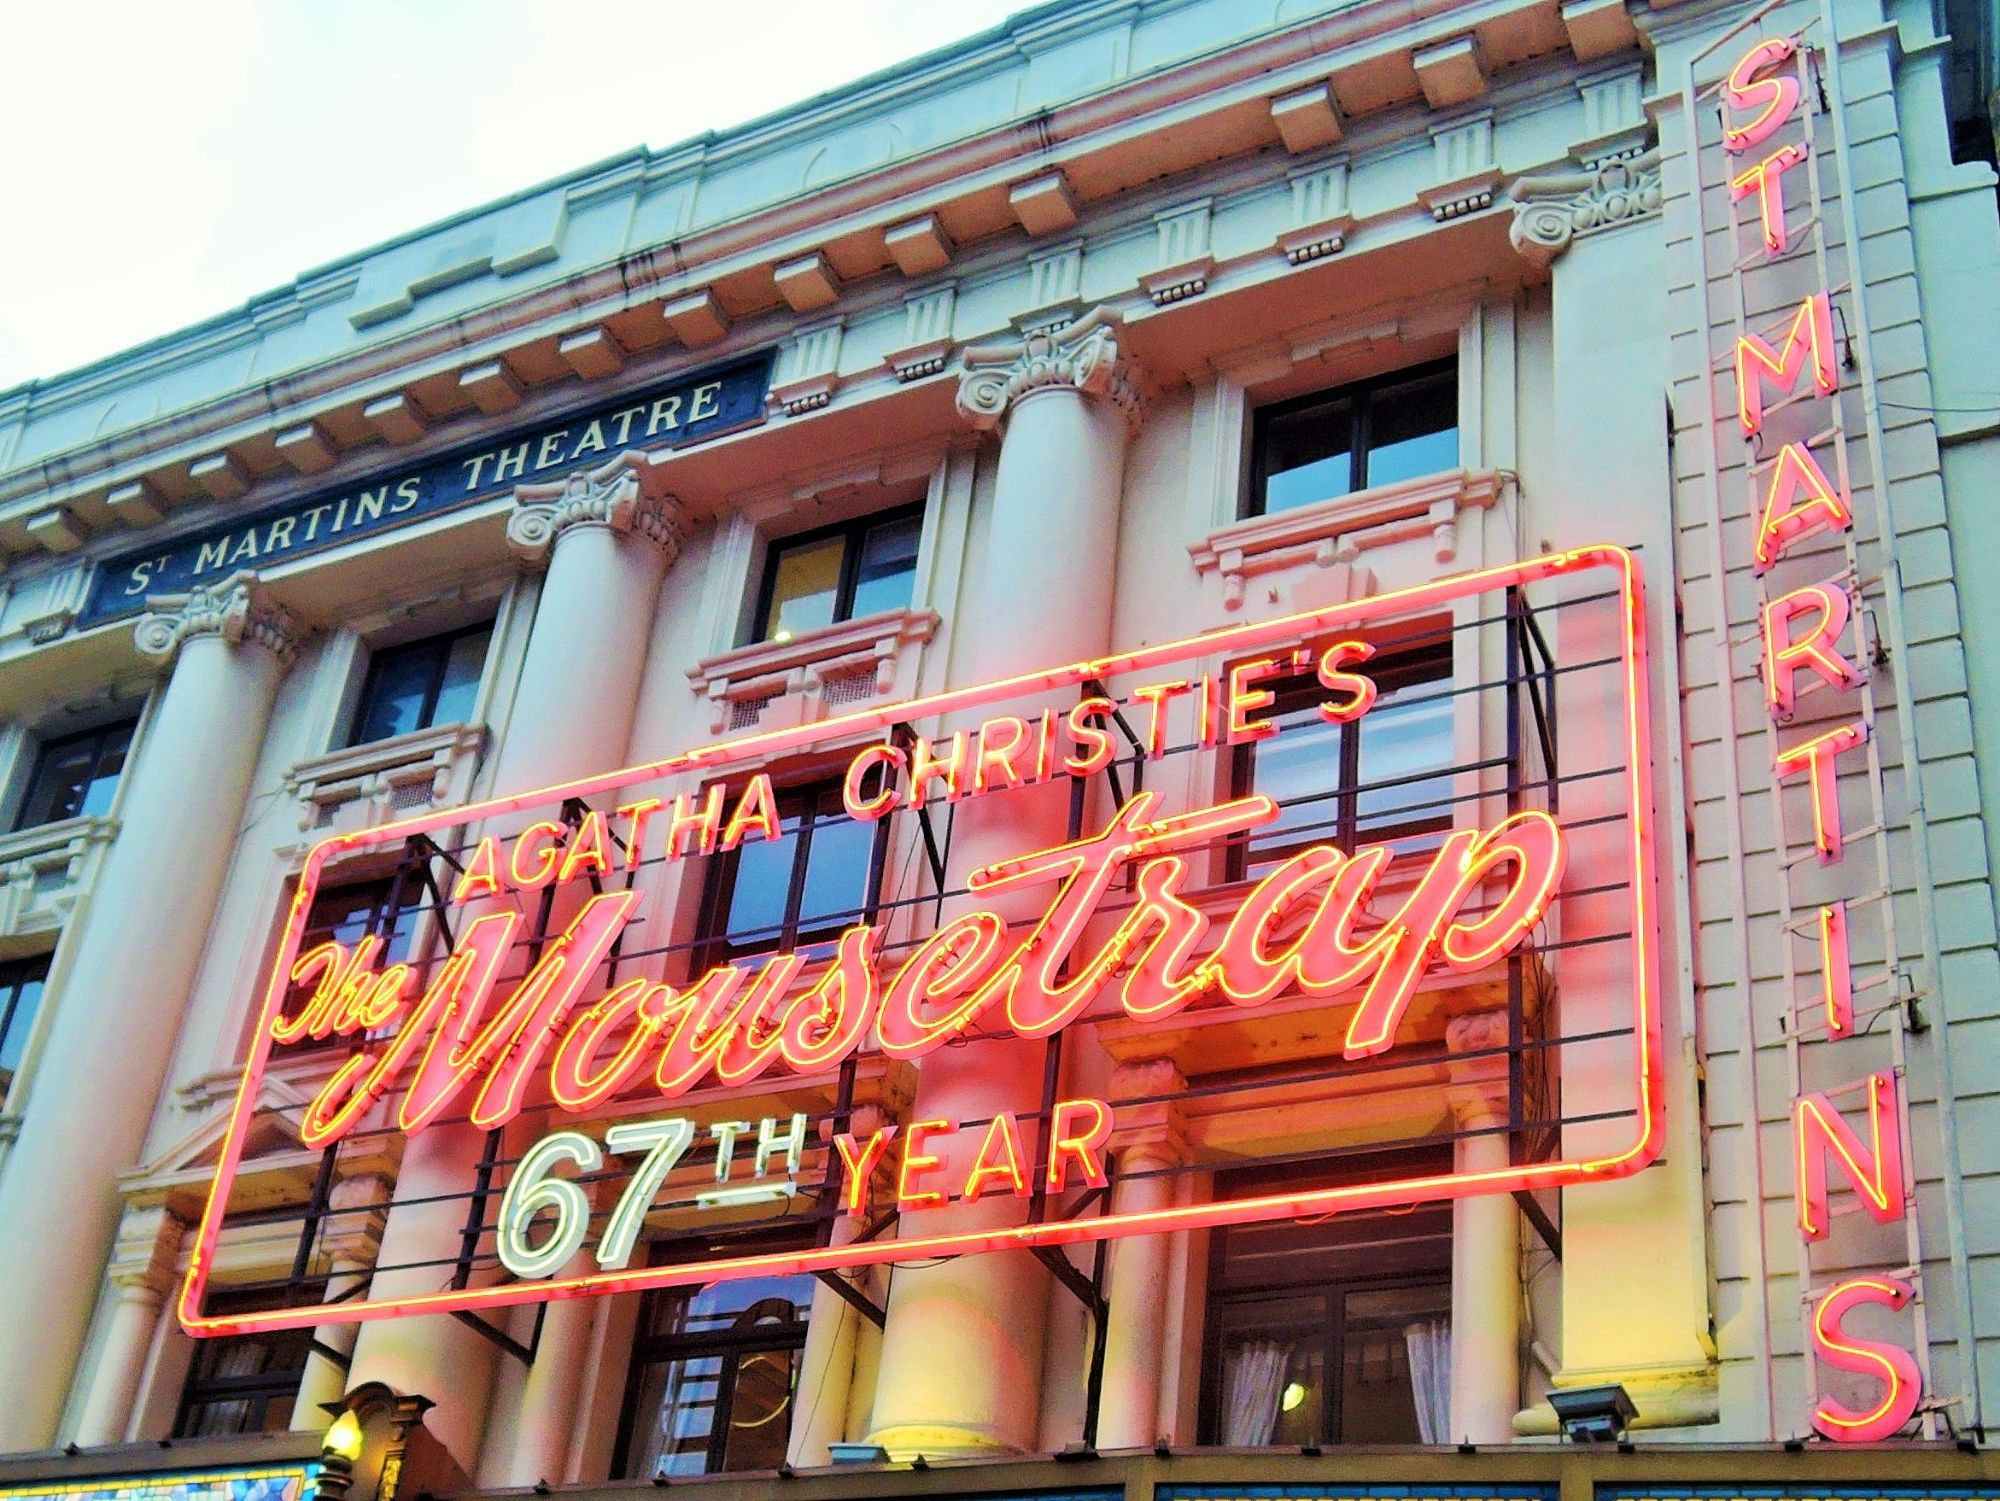 The Mousetrap neon sign